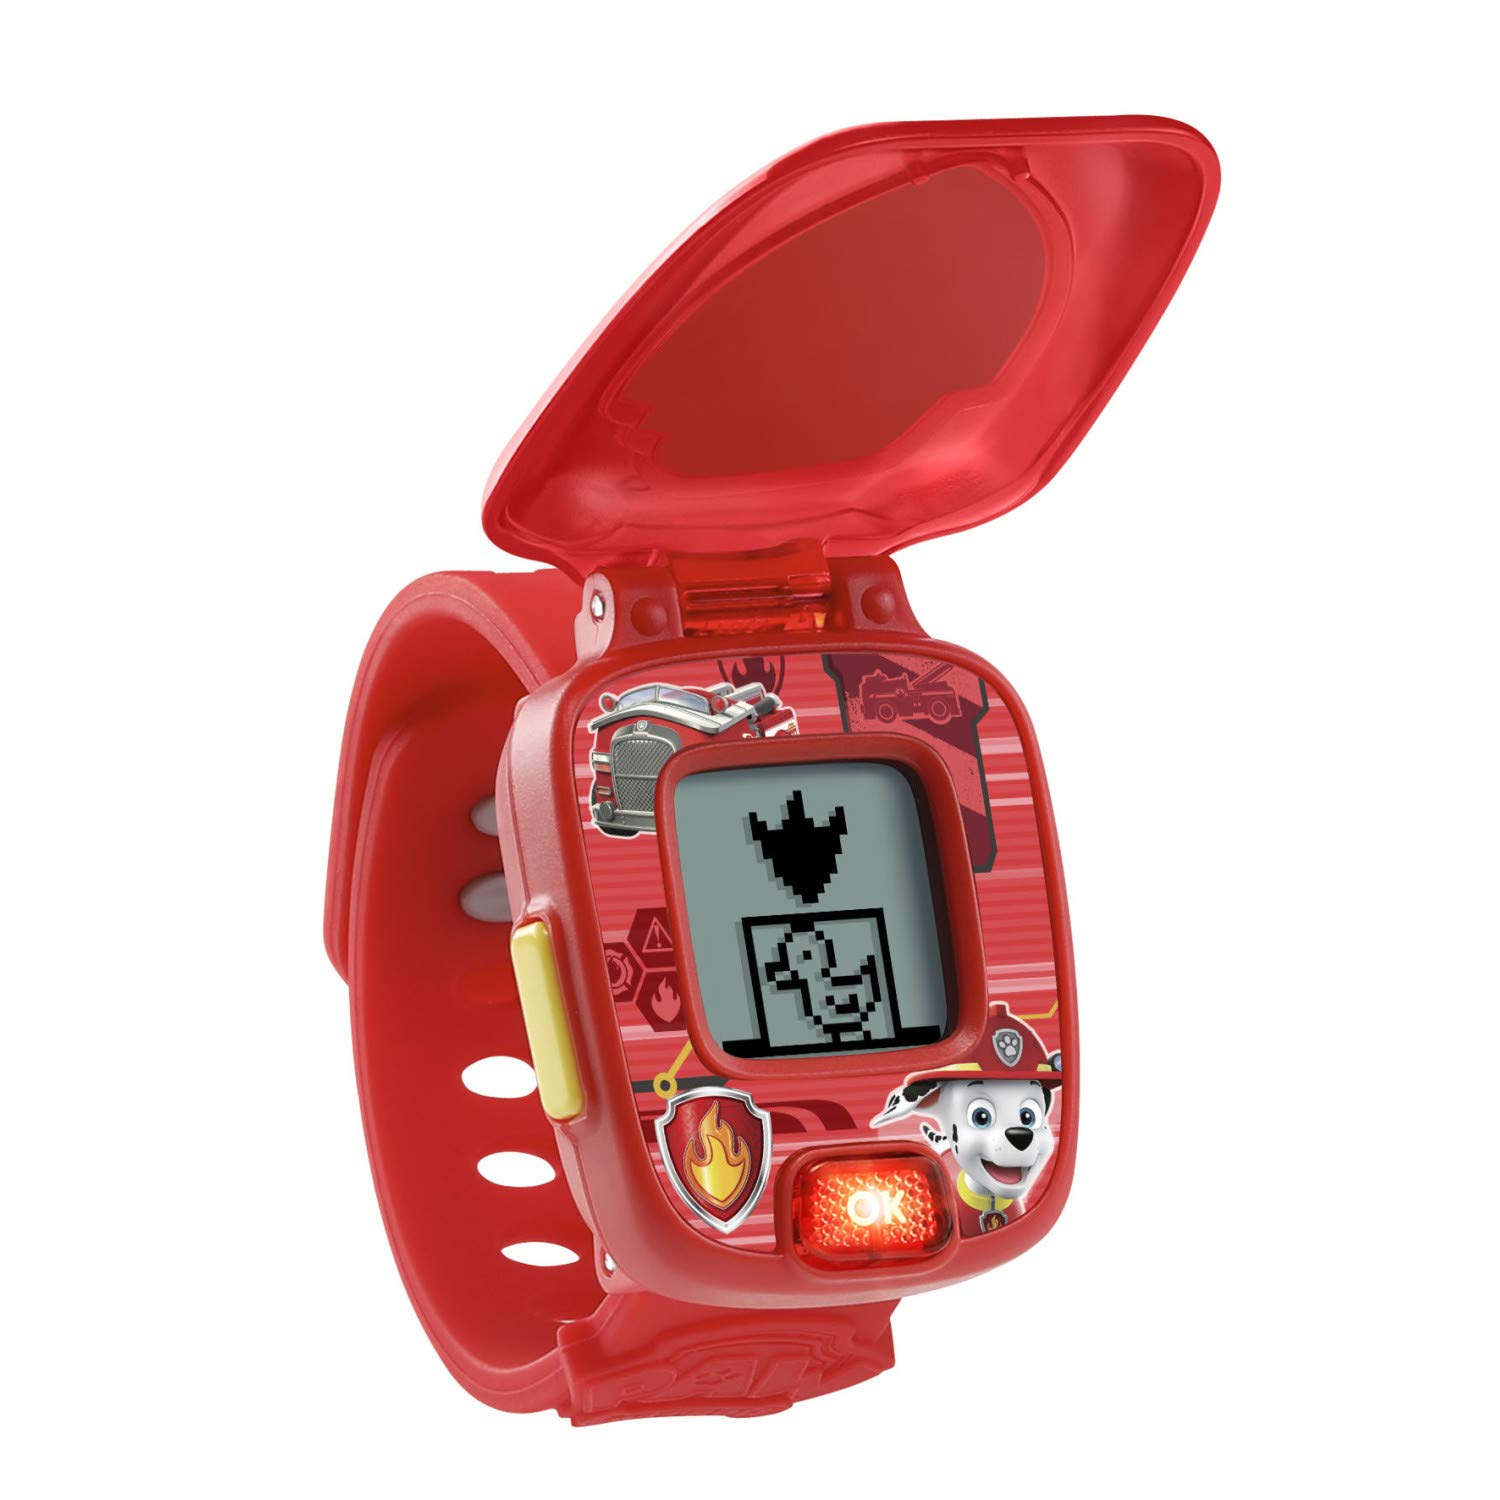 VTech PAW Patrol Marshall Learning Watch, Red by VTech (Image #4)